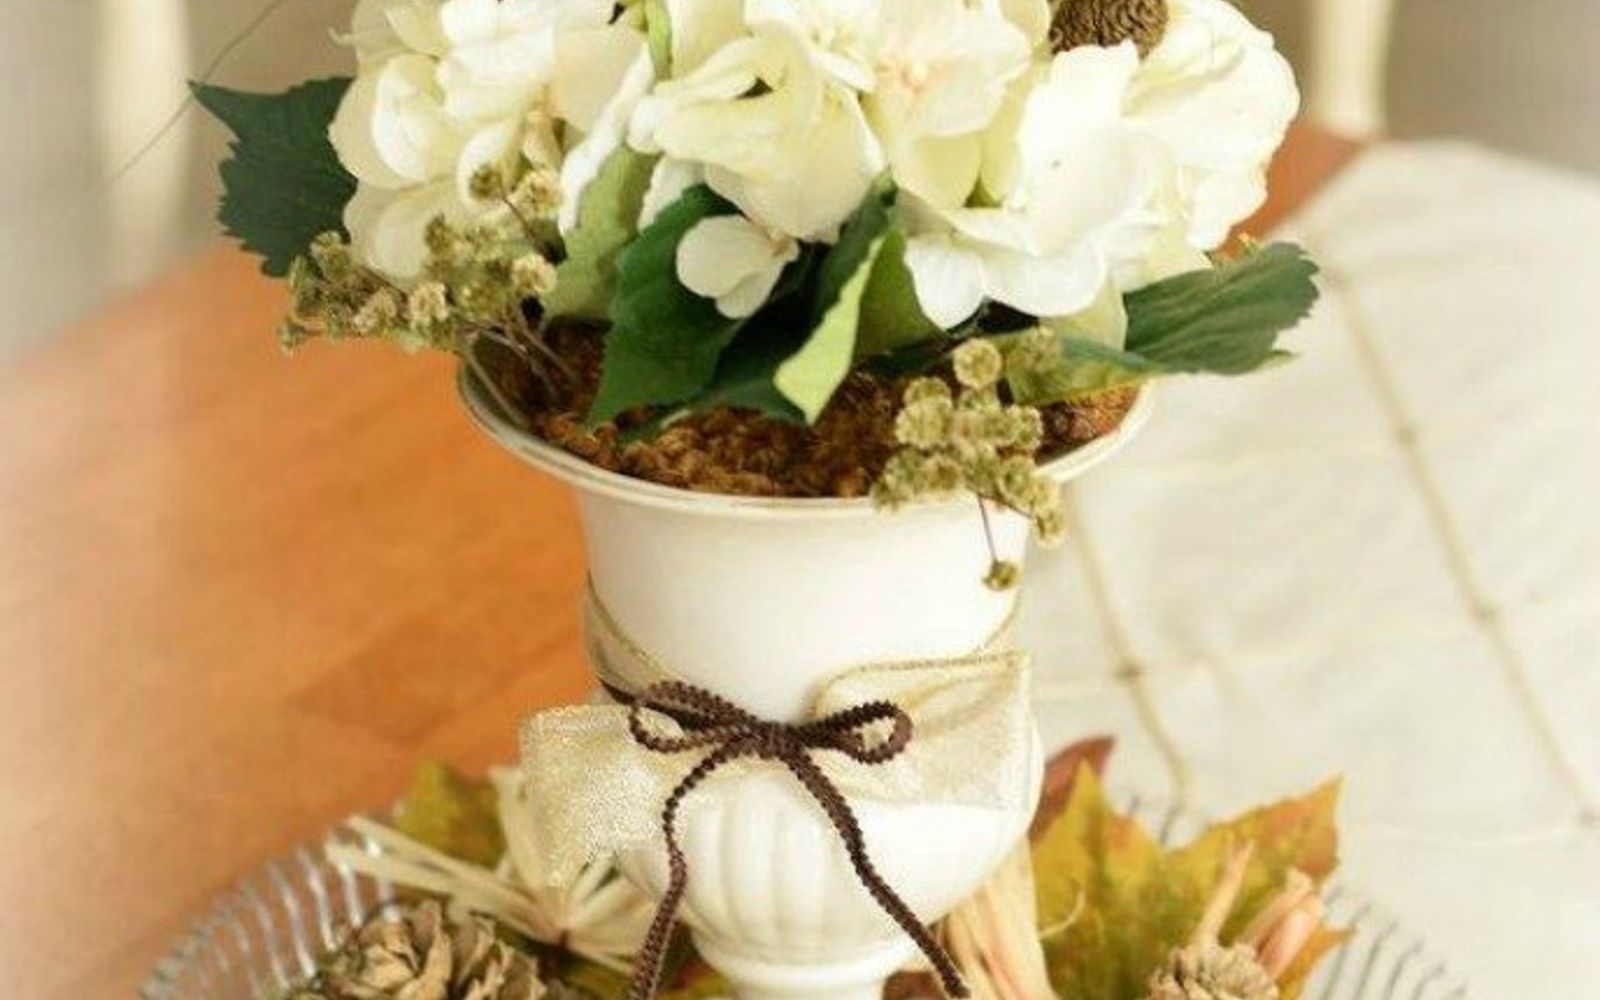 s why everyone is buying artificial flowers for the holidays, gardening, They look great as a centerpiece